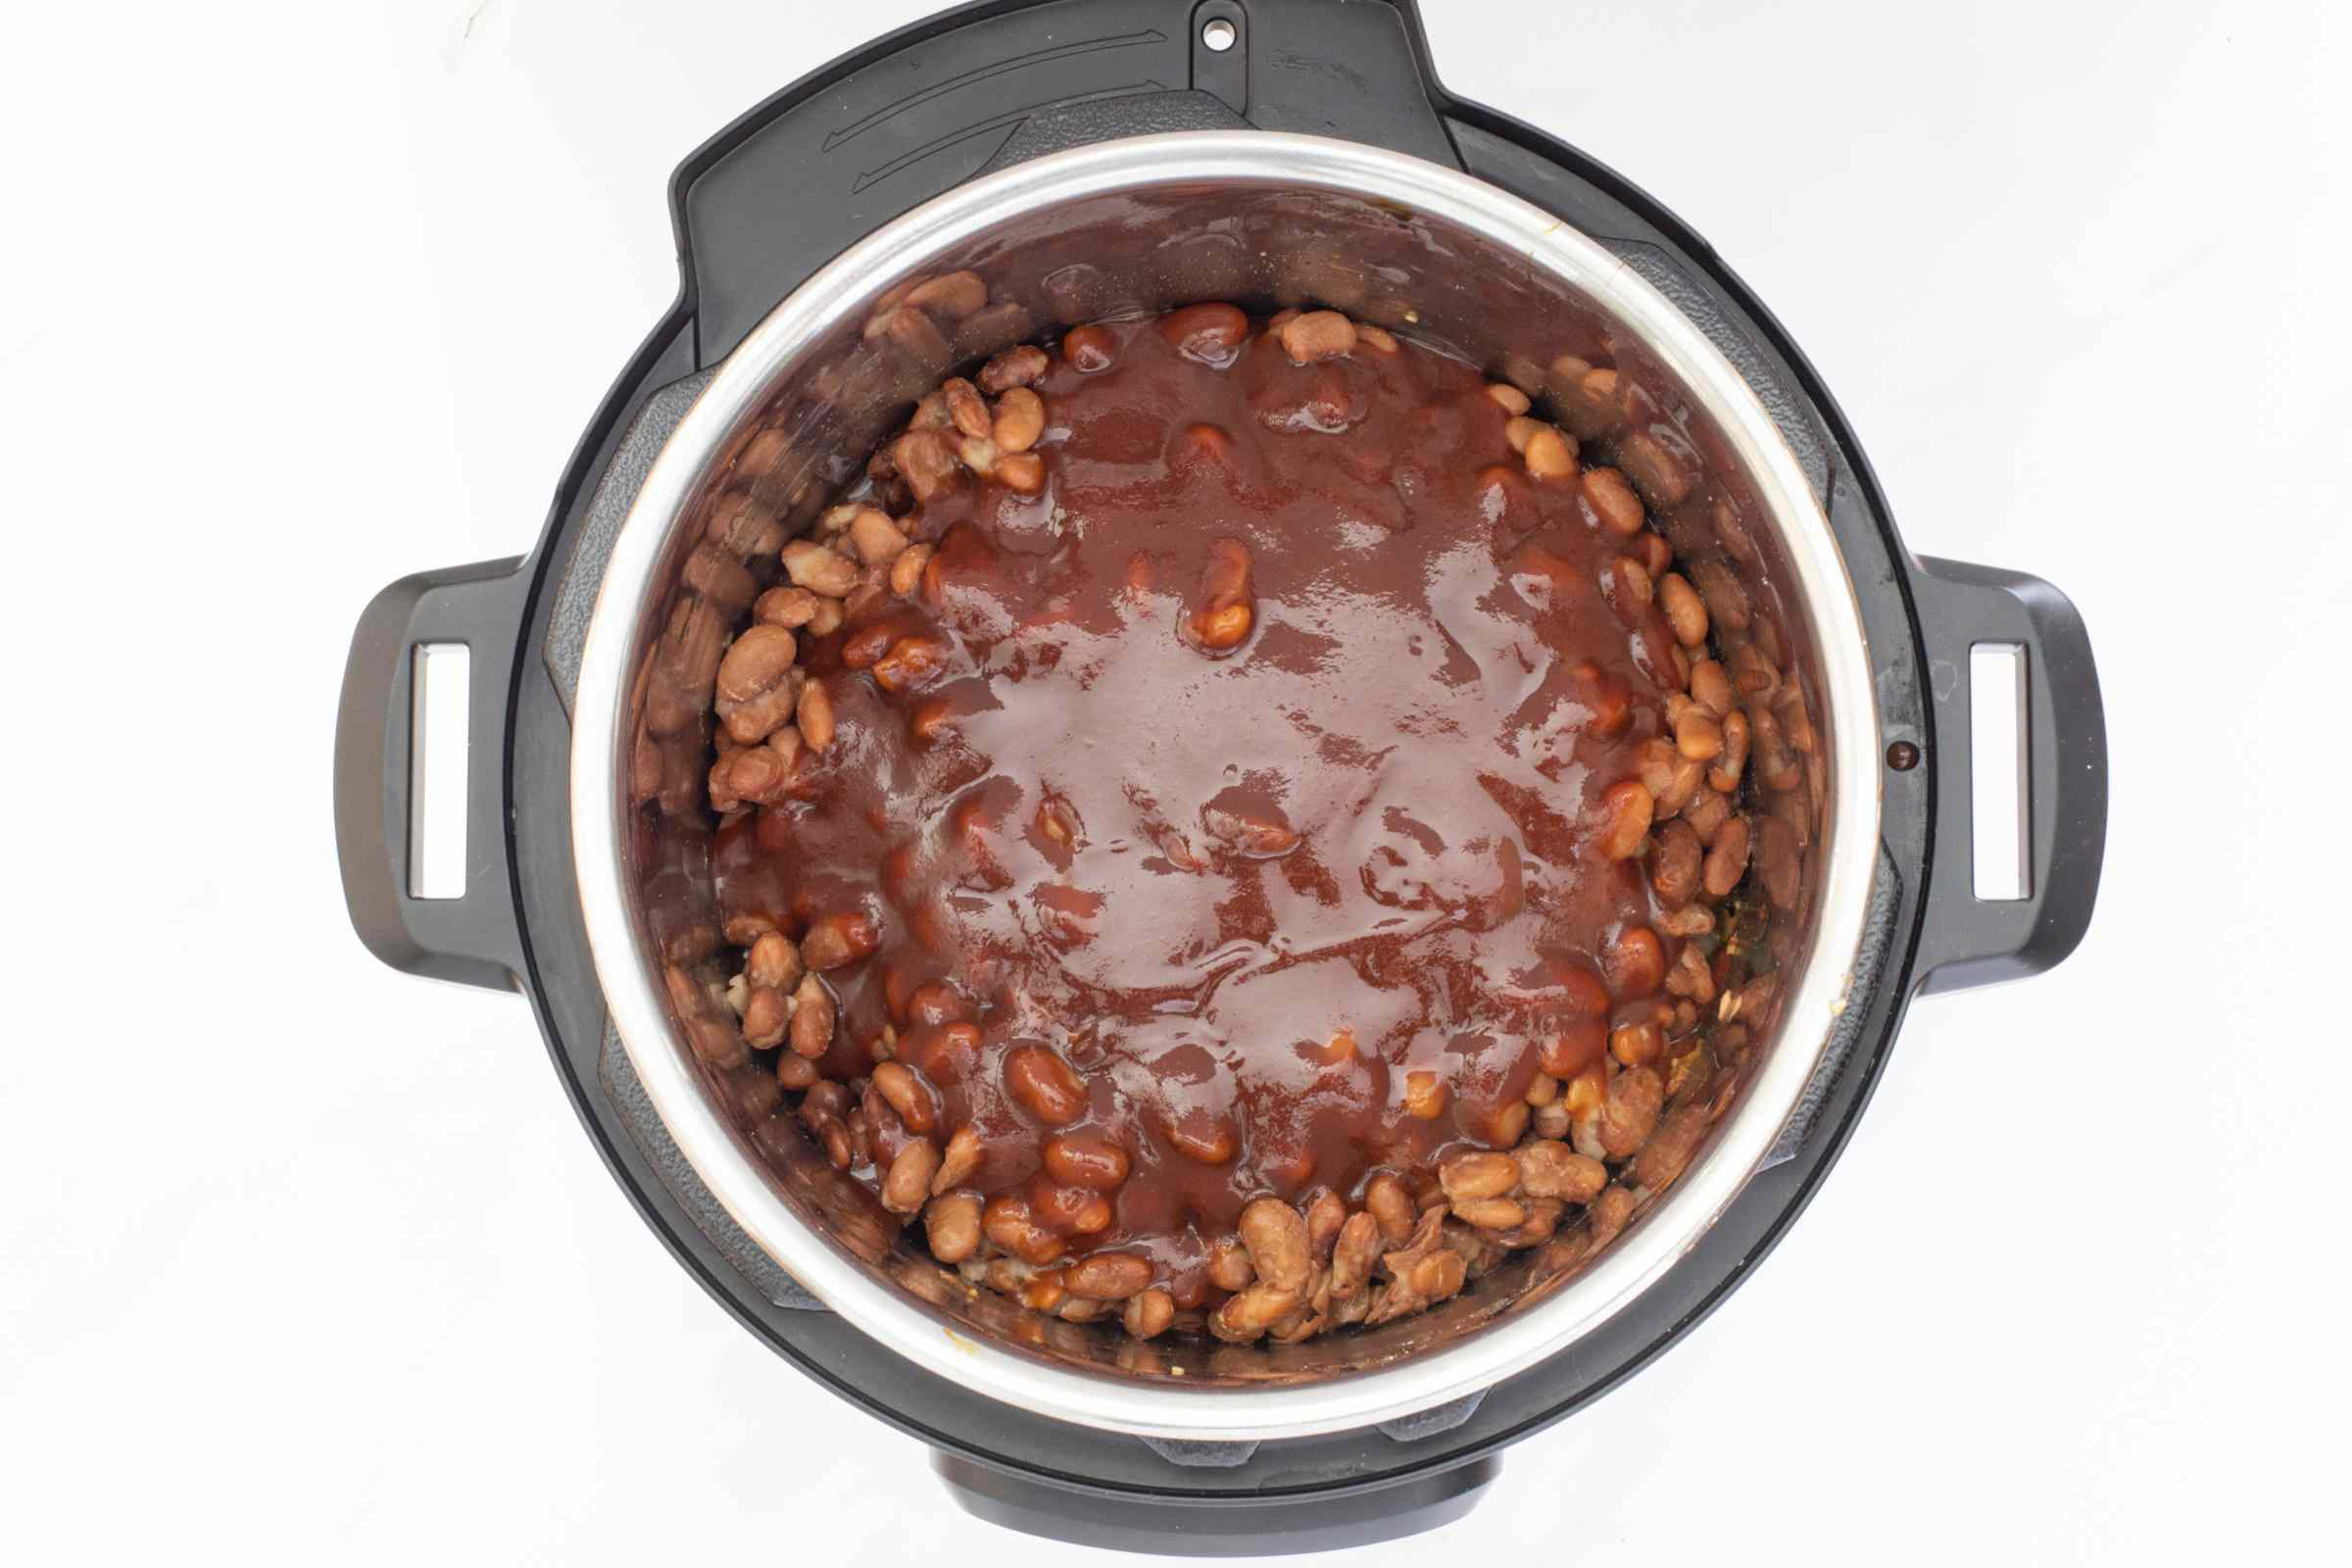 beans and barbecue sauce layered in the instant pot